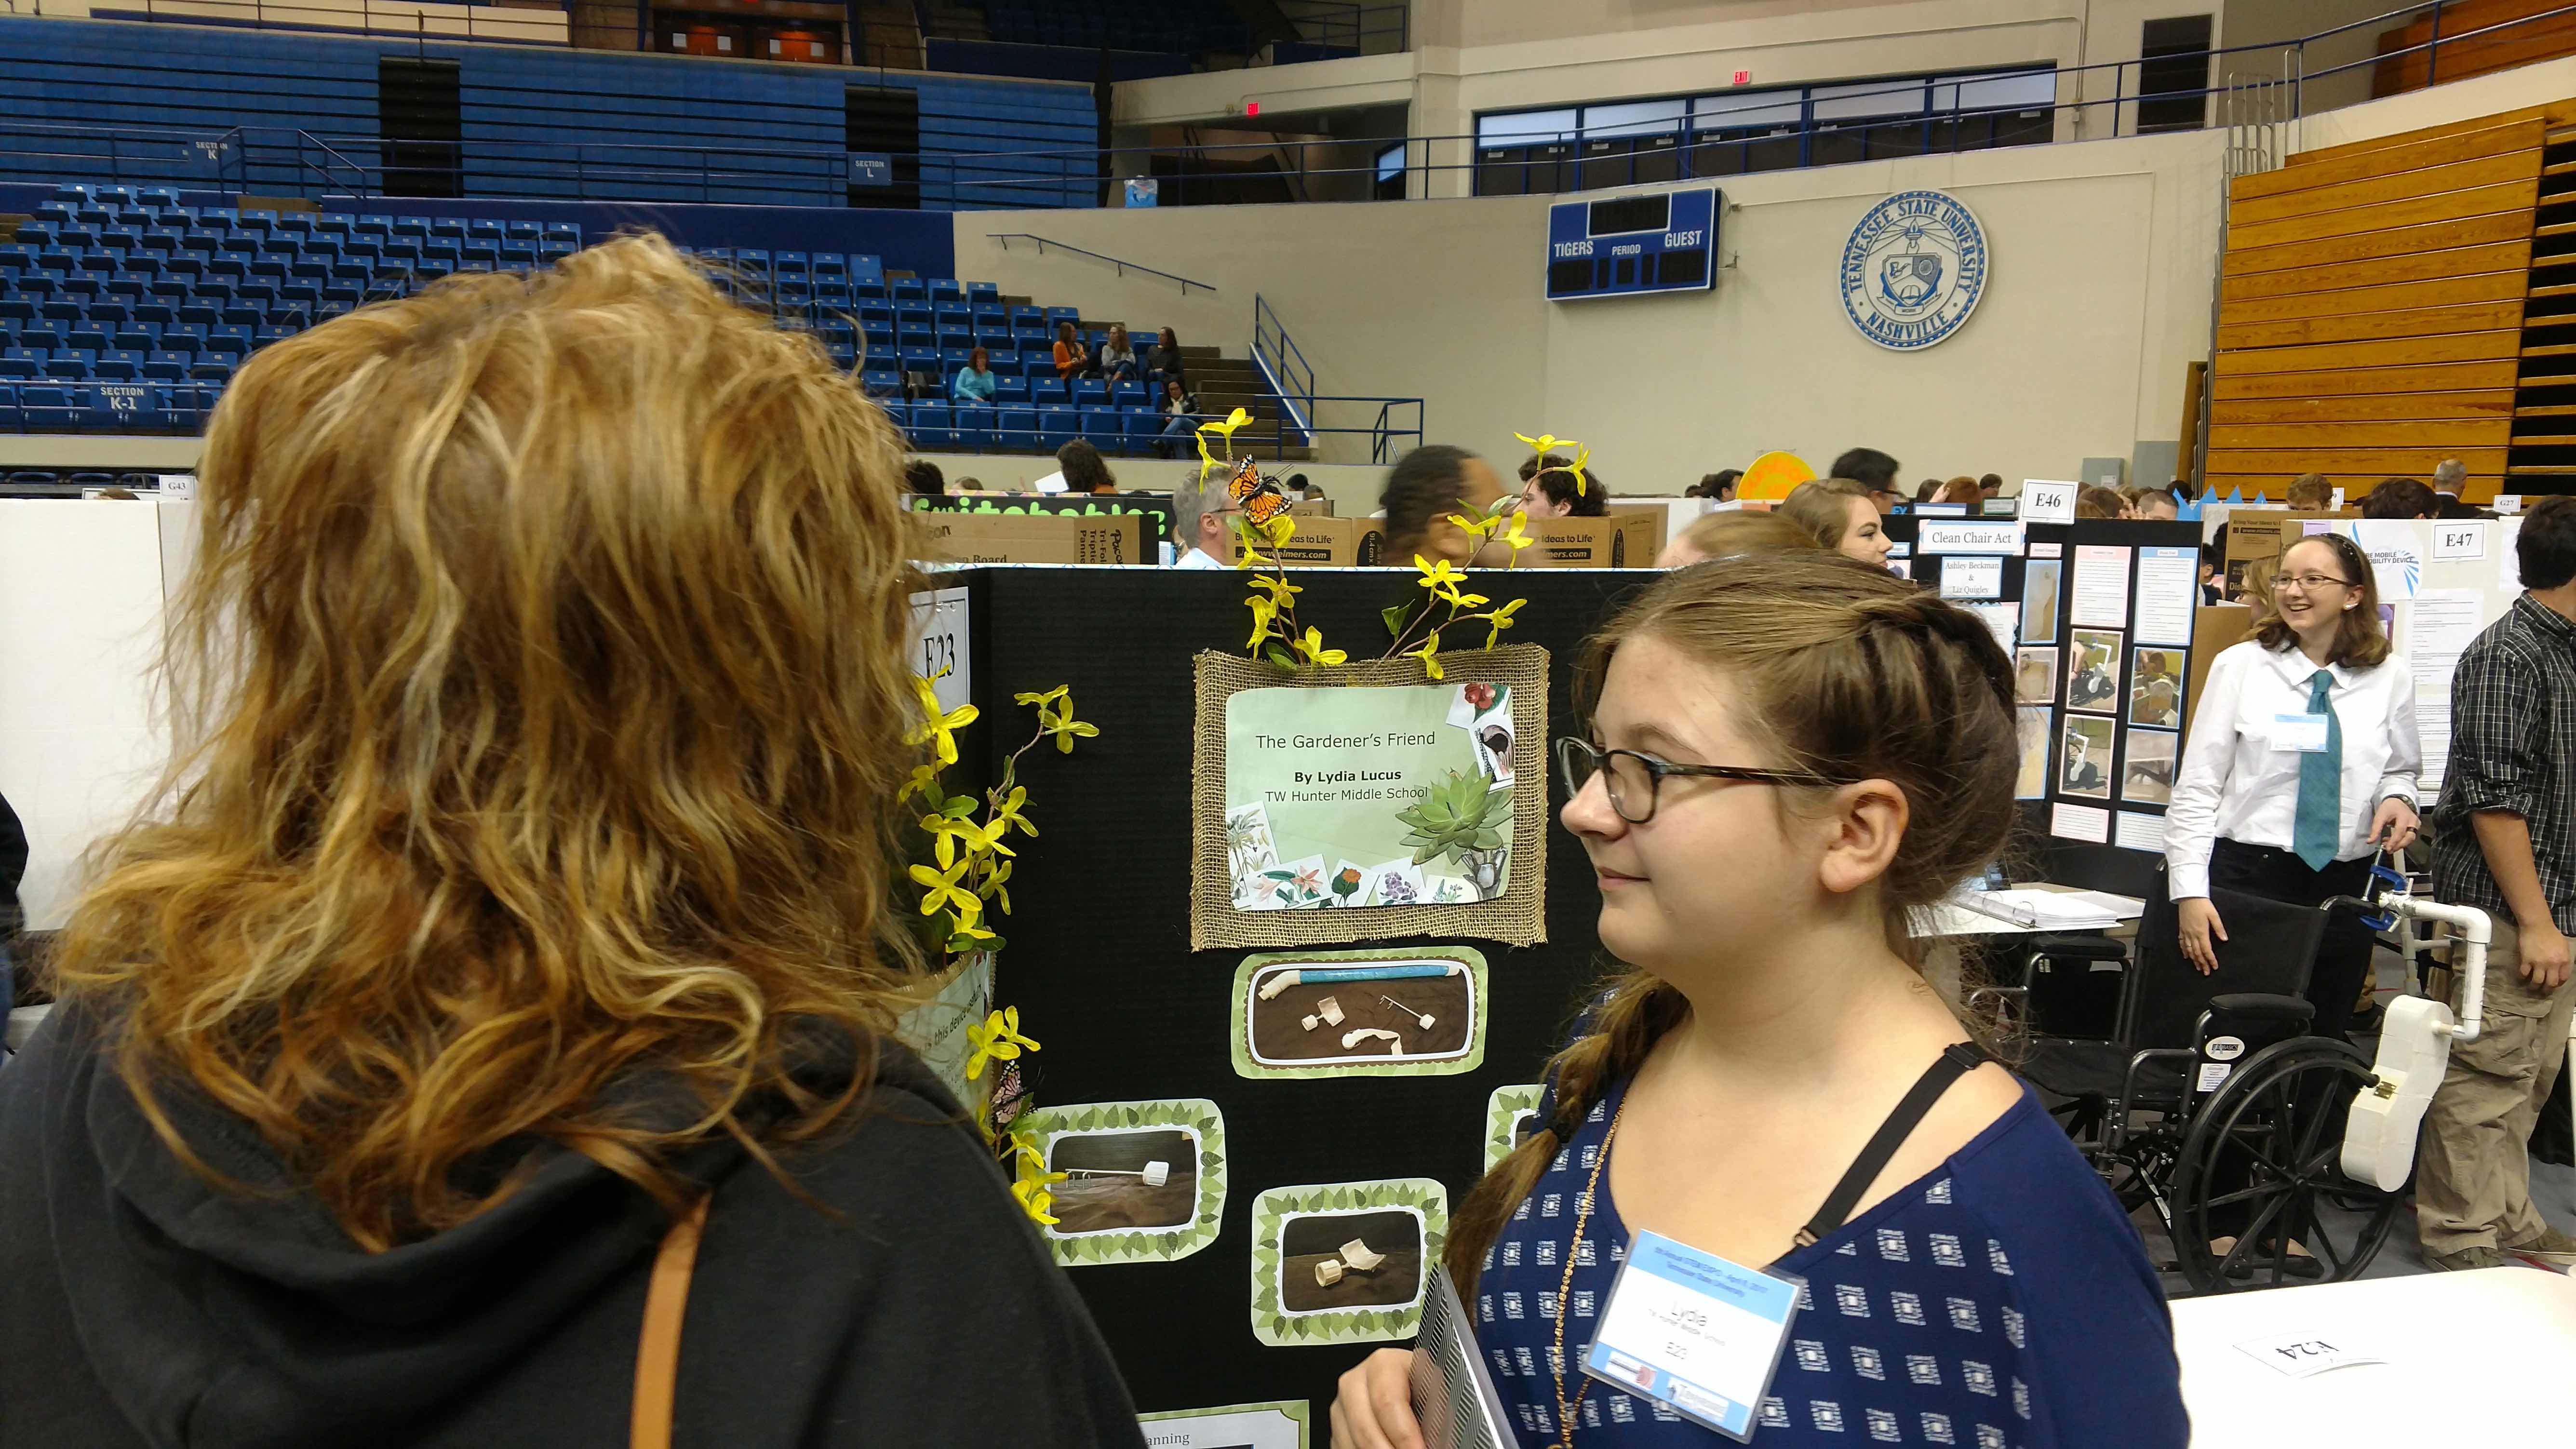 More from STEM Expo